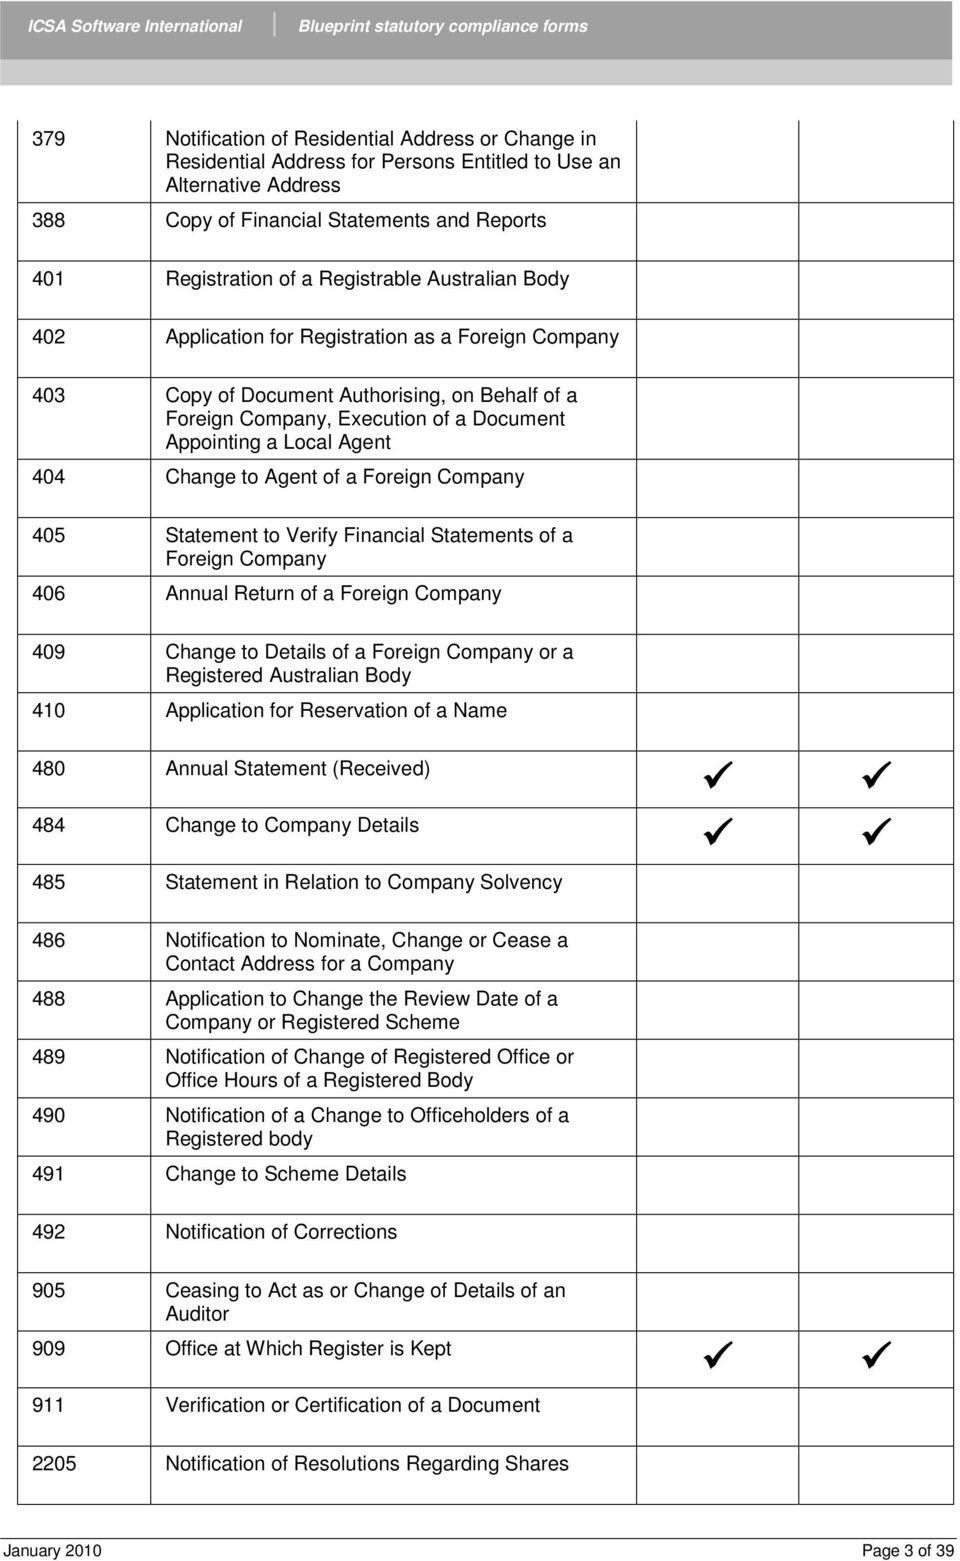 Blueprint oneworld statutory compliance forms pdf 404 change to agent of a foreign company 405 statement to verify financial statements of a malvernweather Gallery